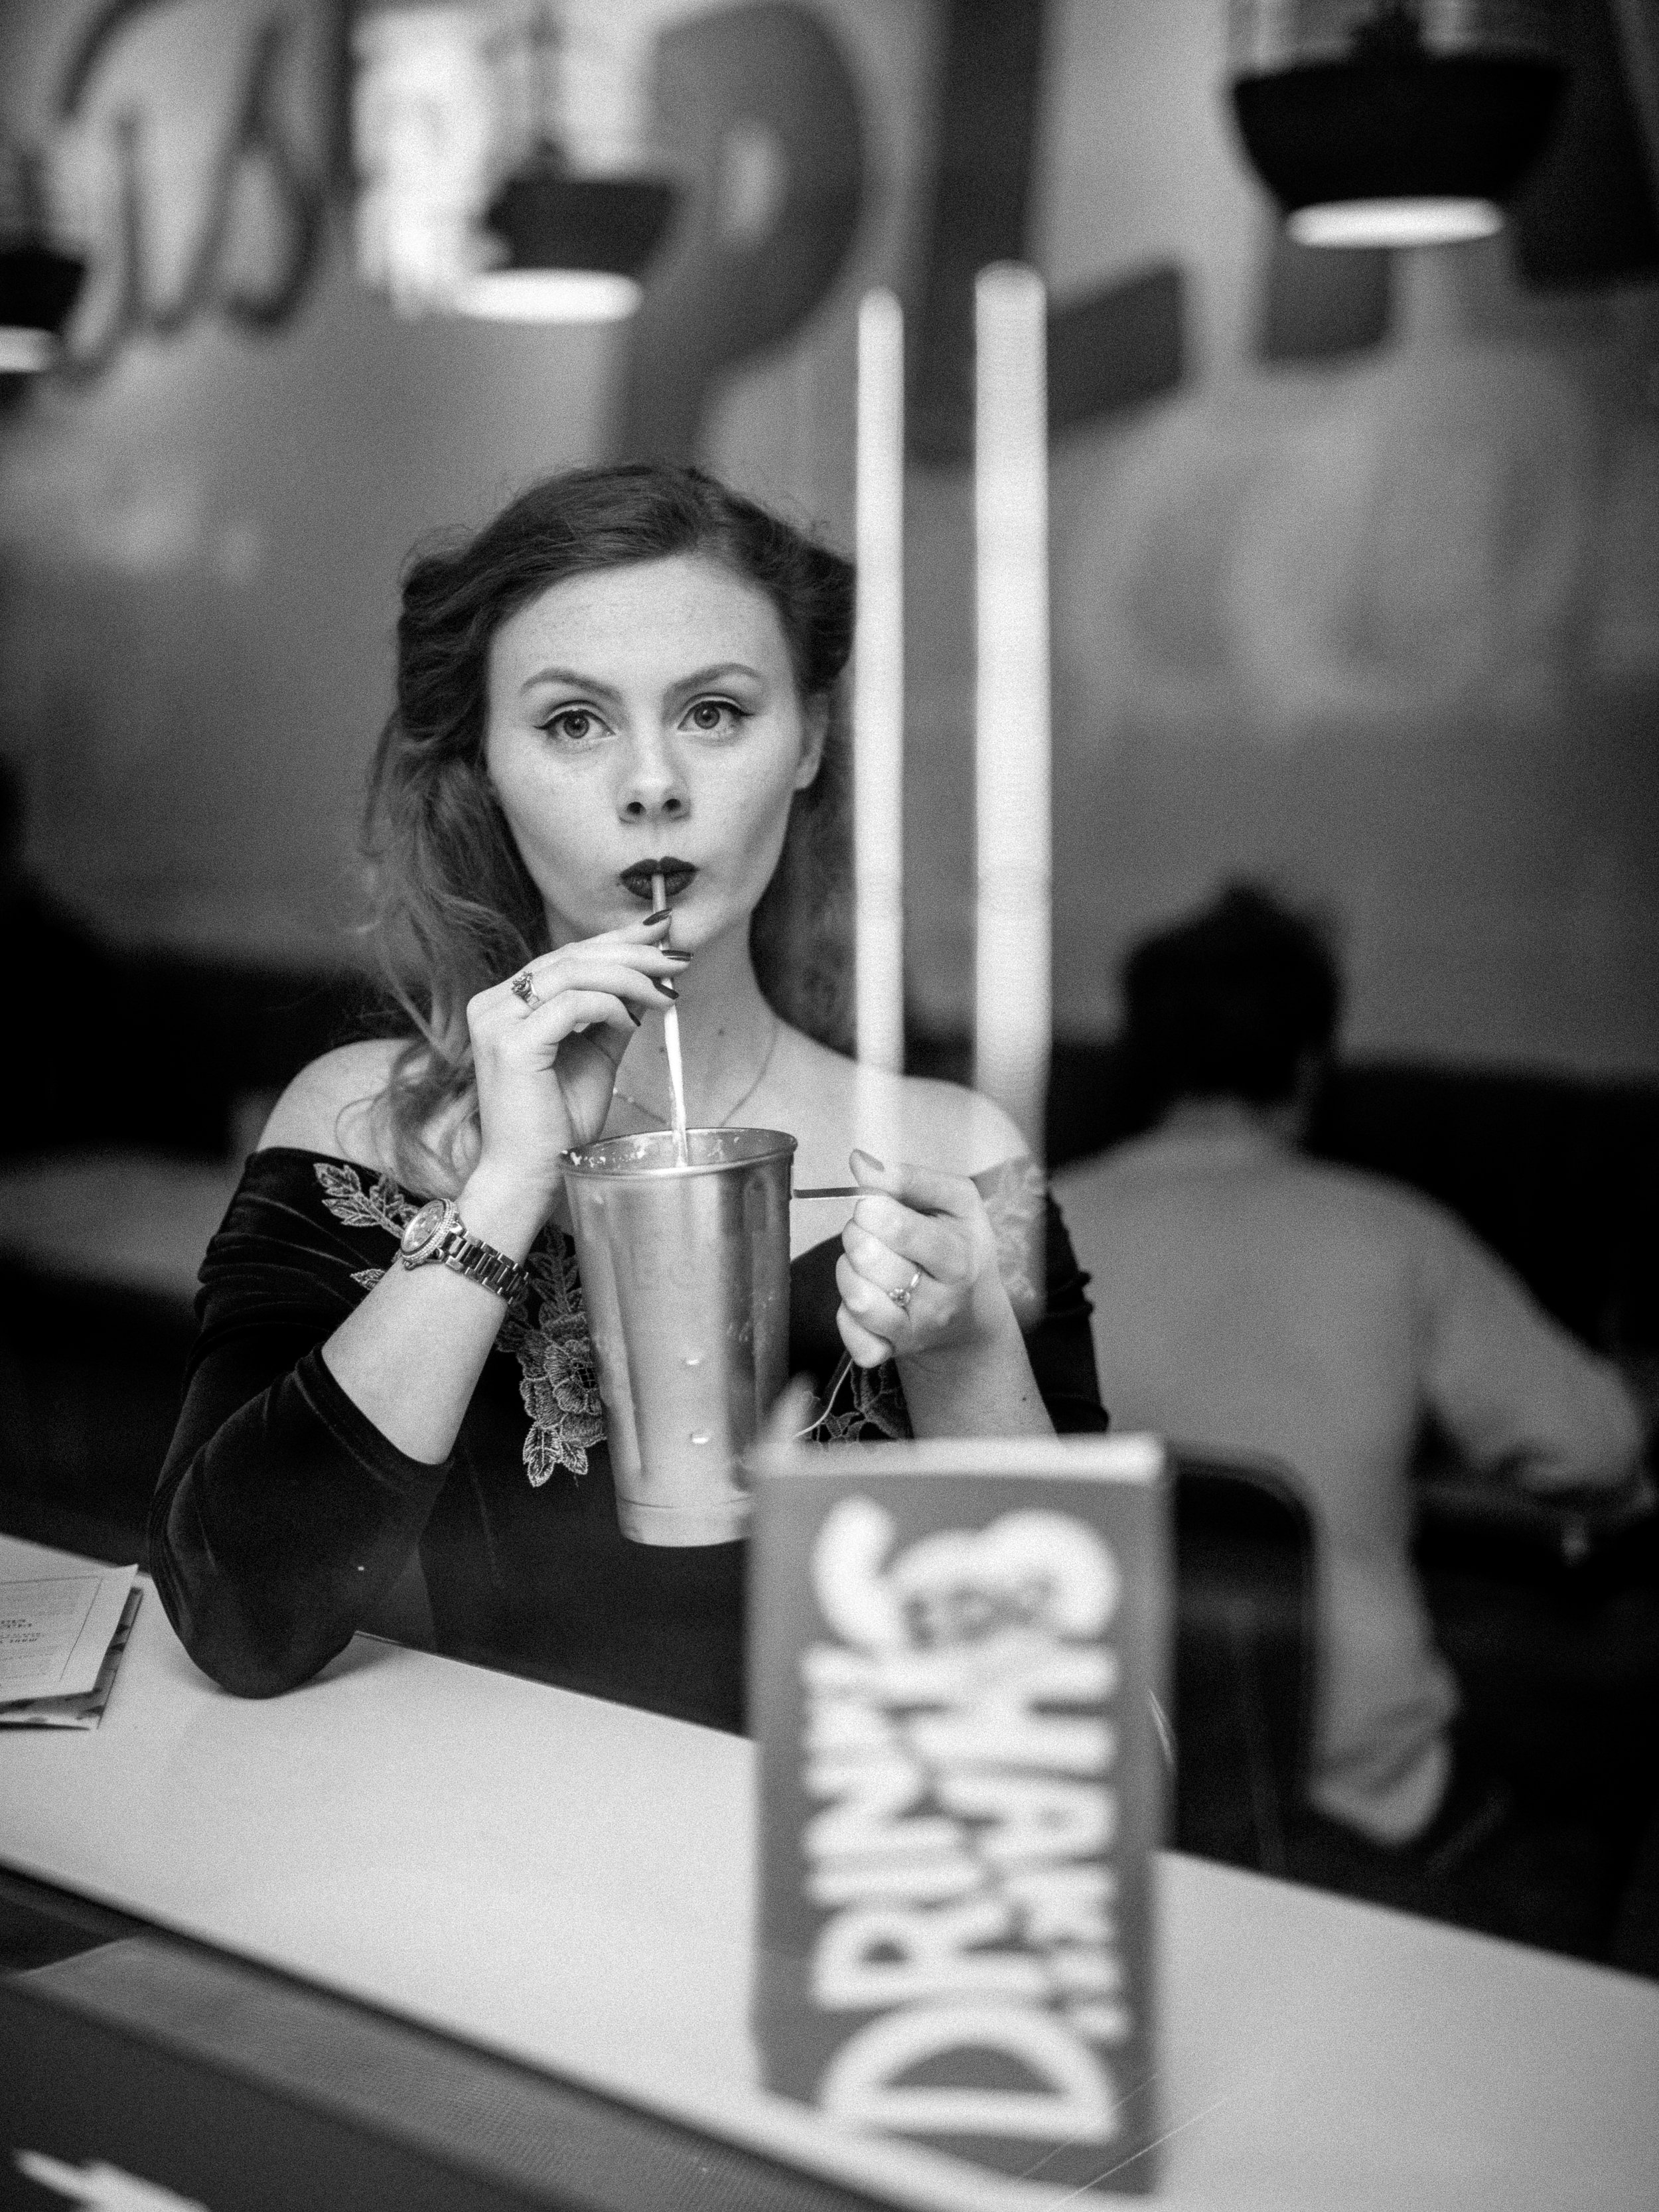 1950s Diner Portrait Window Reflections Black and White